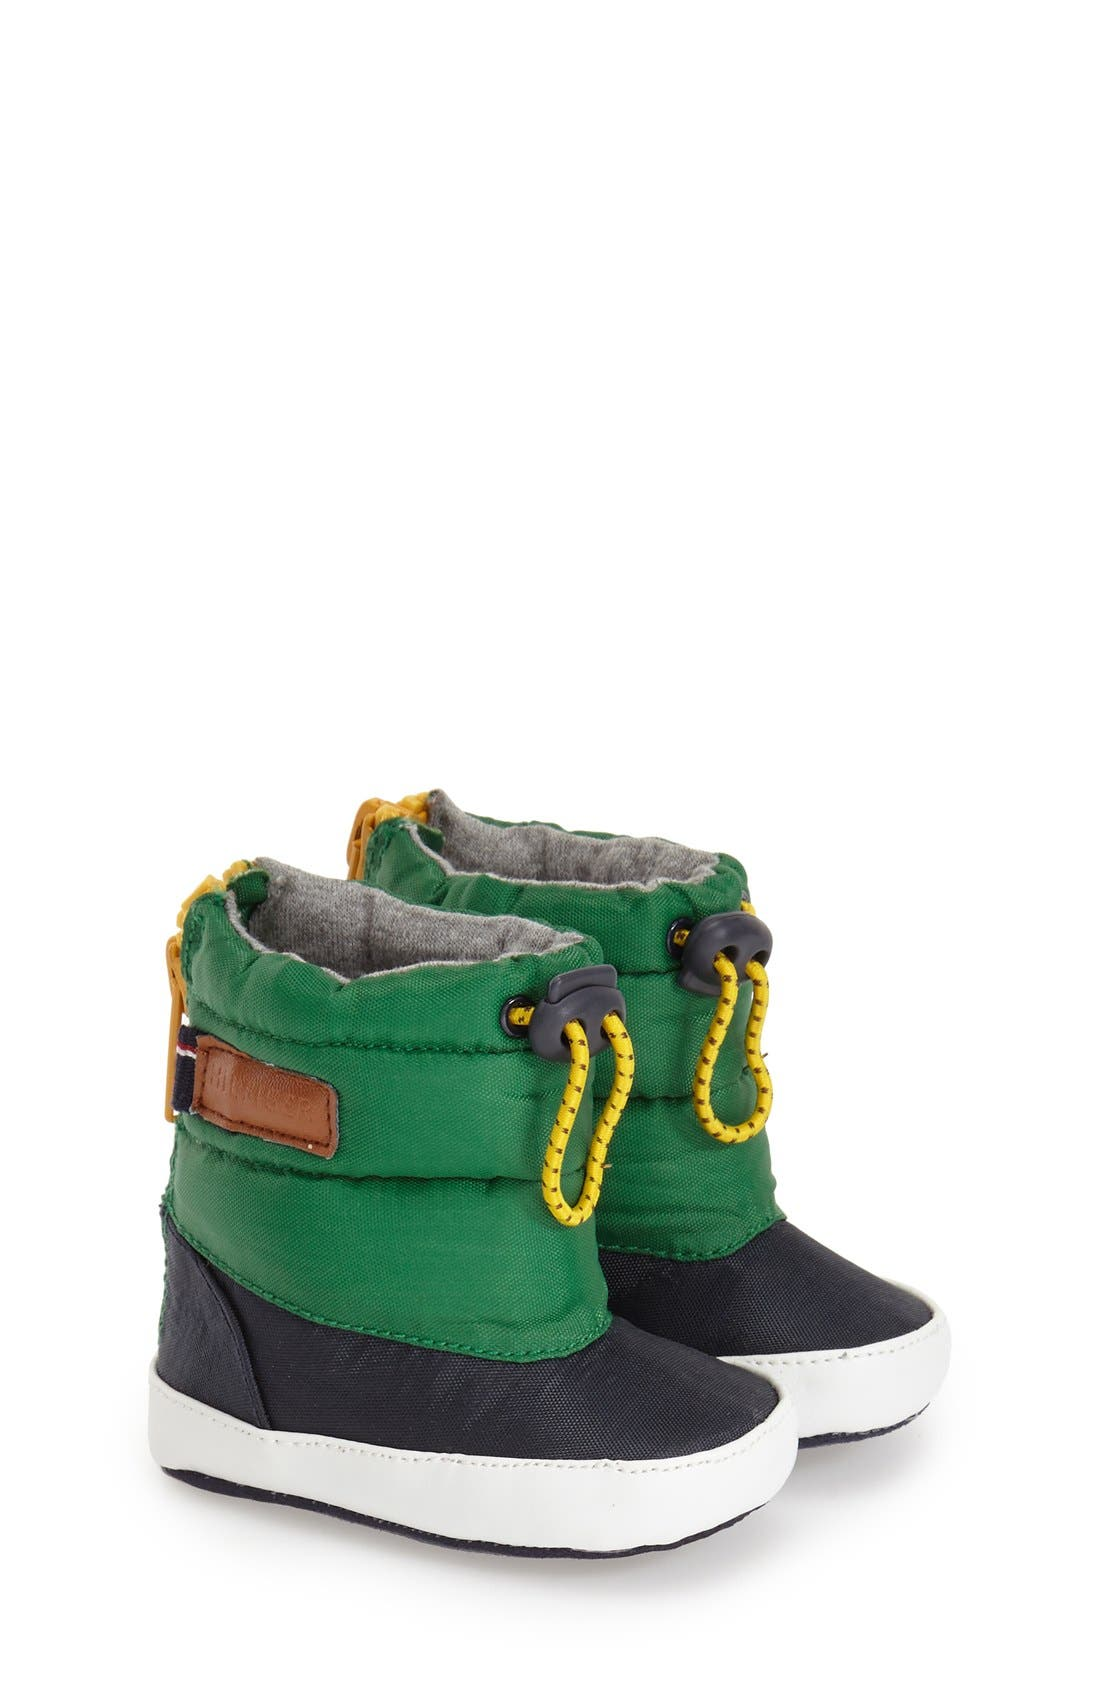 TOMMY HILFIGER,                             'LilMadison' Boot,                             Main thumbnail 1, color,                             303